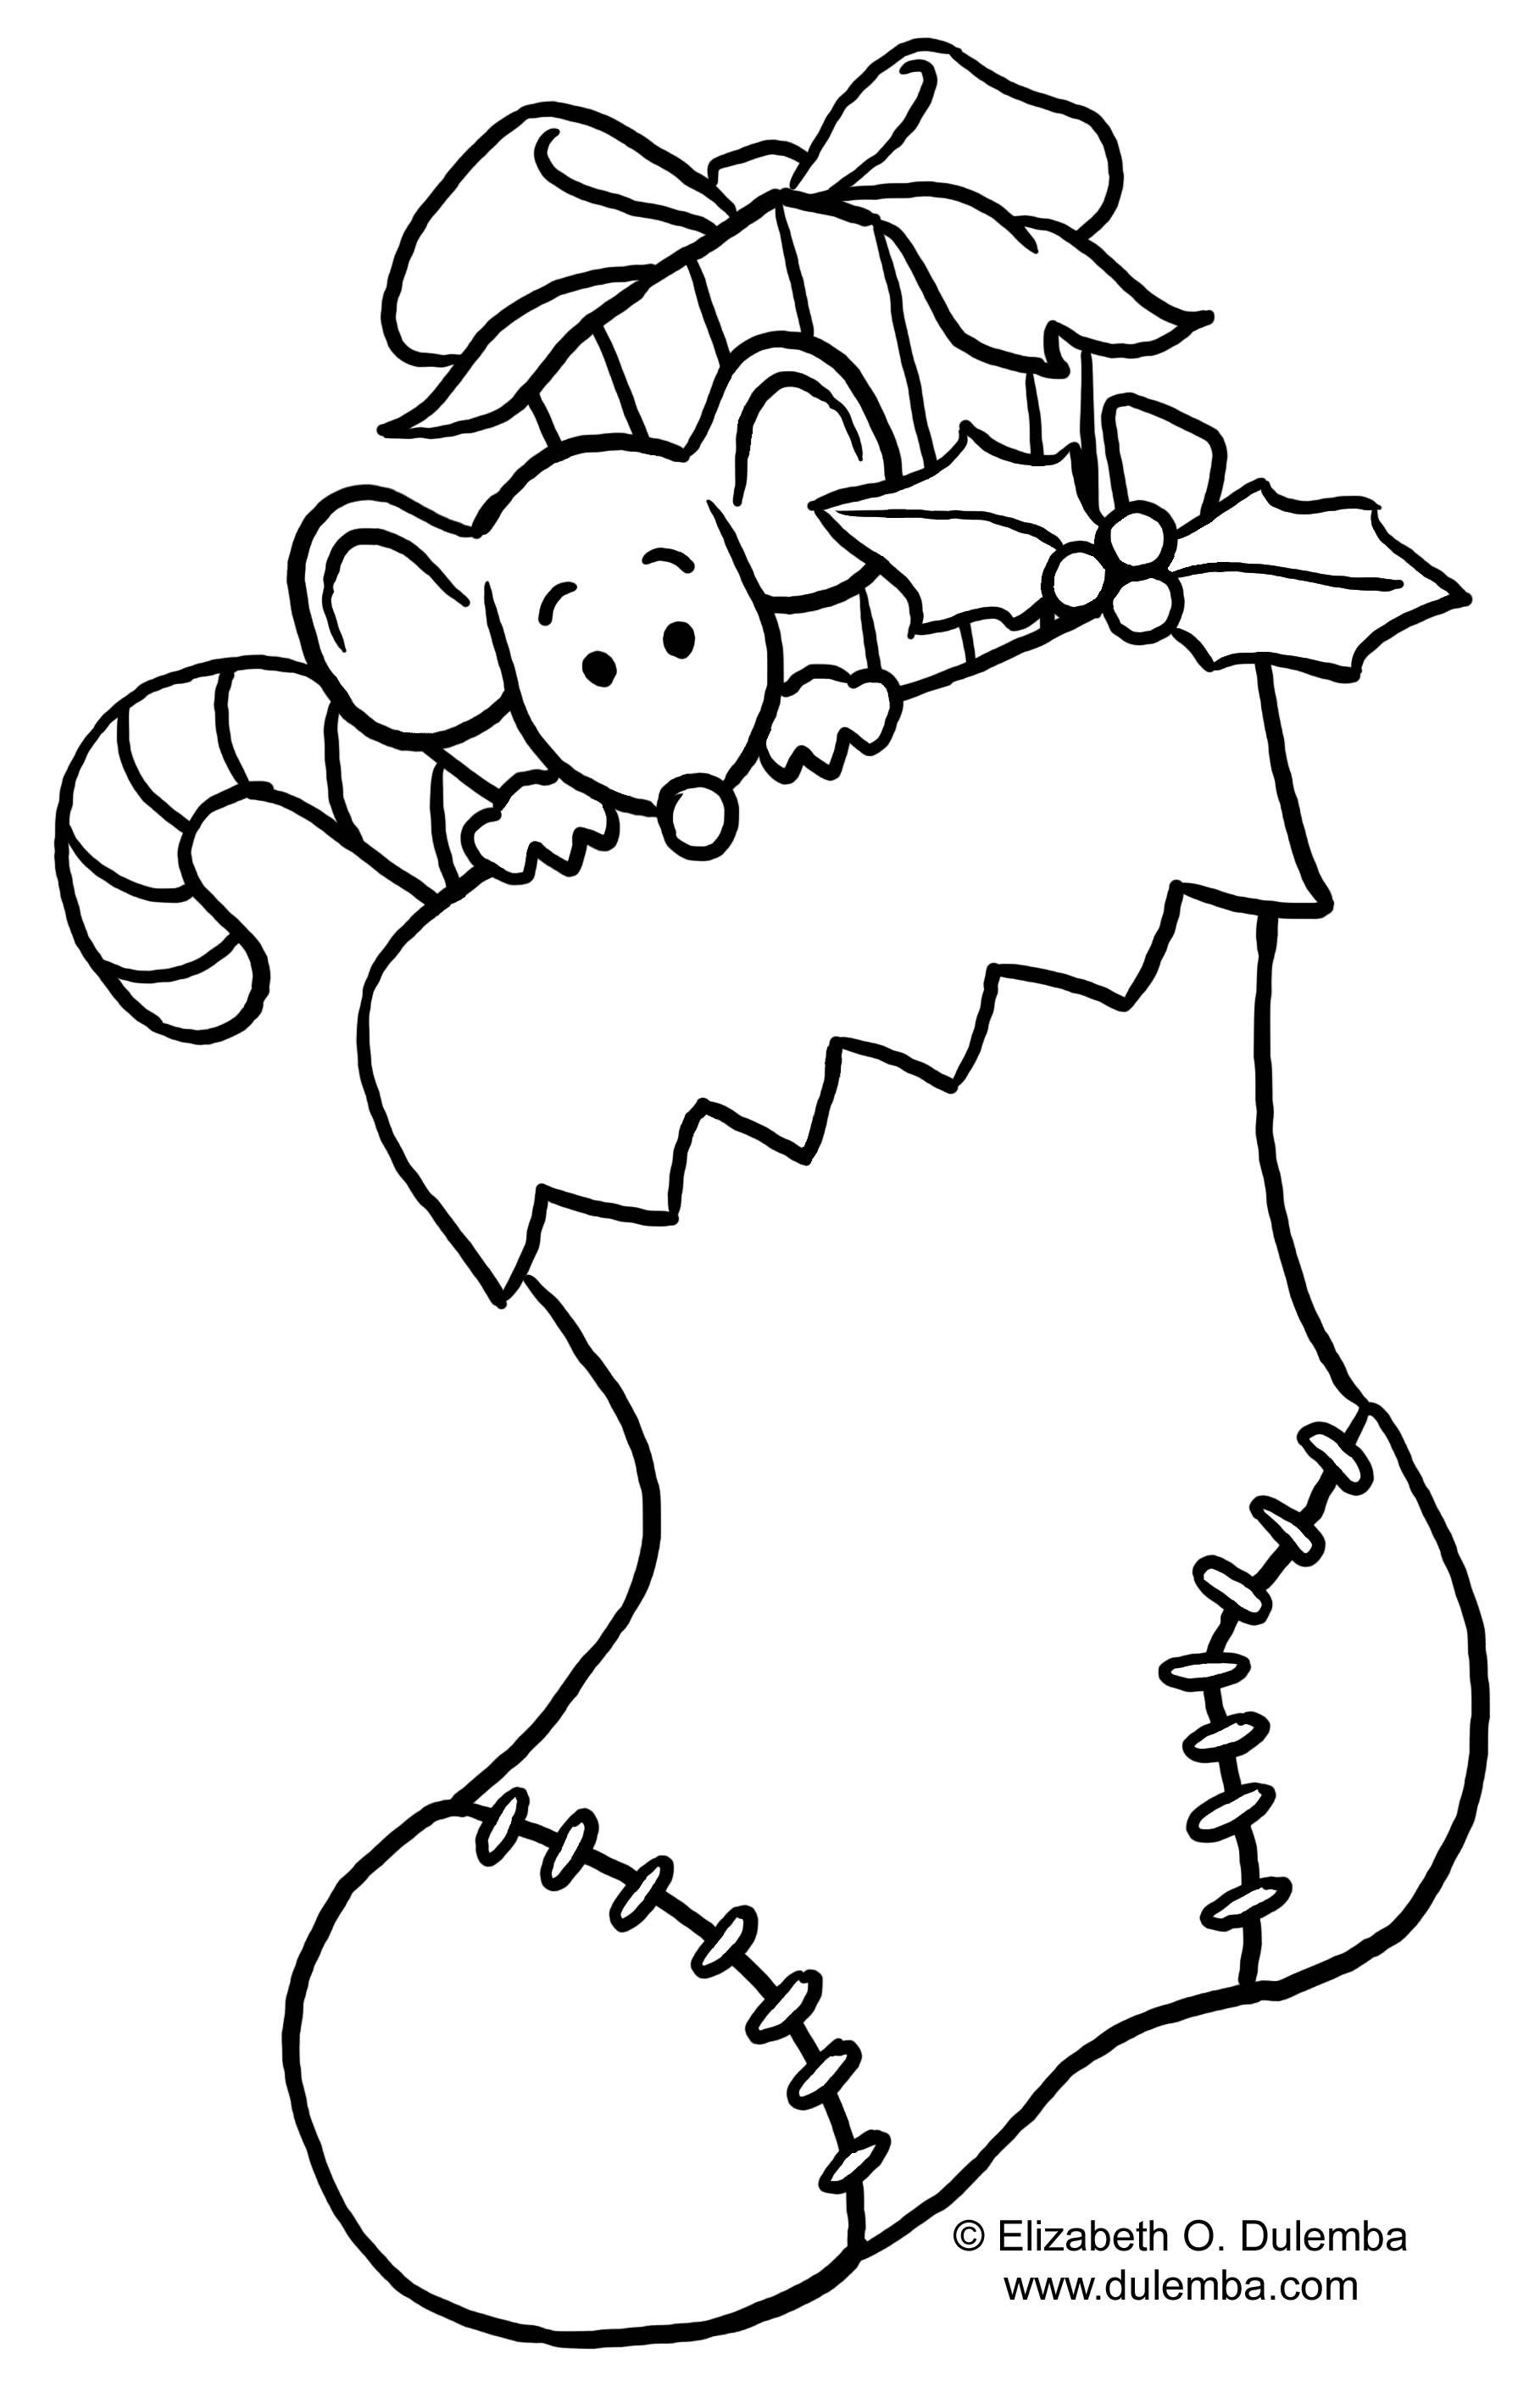 Christmas colouring pages to print out - Christmas Colouring Pages To Print Out 11